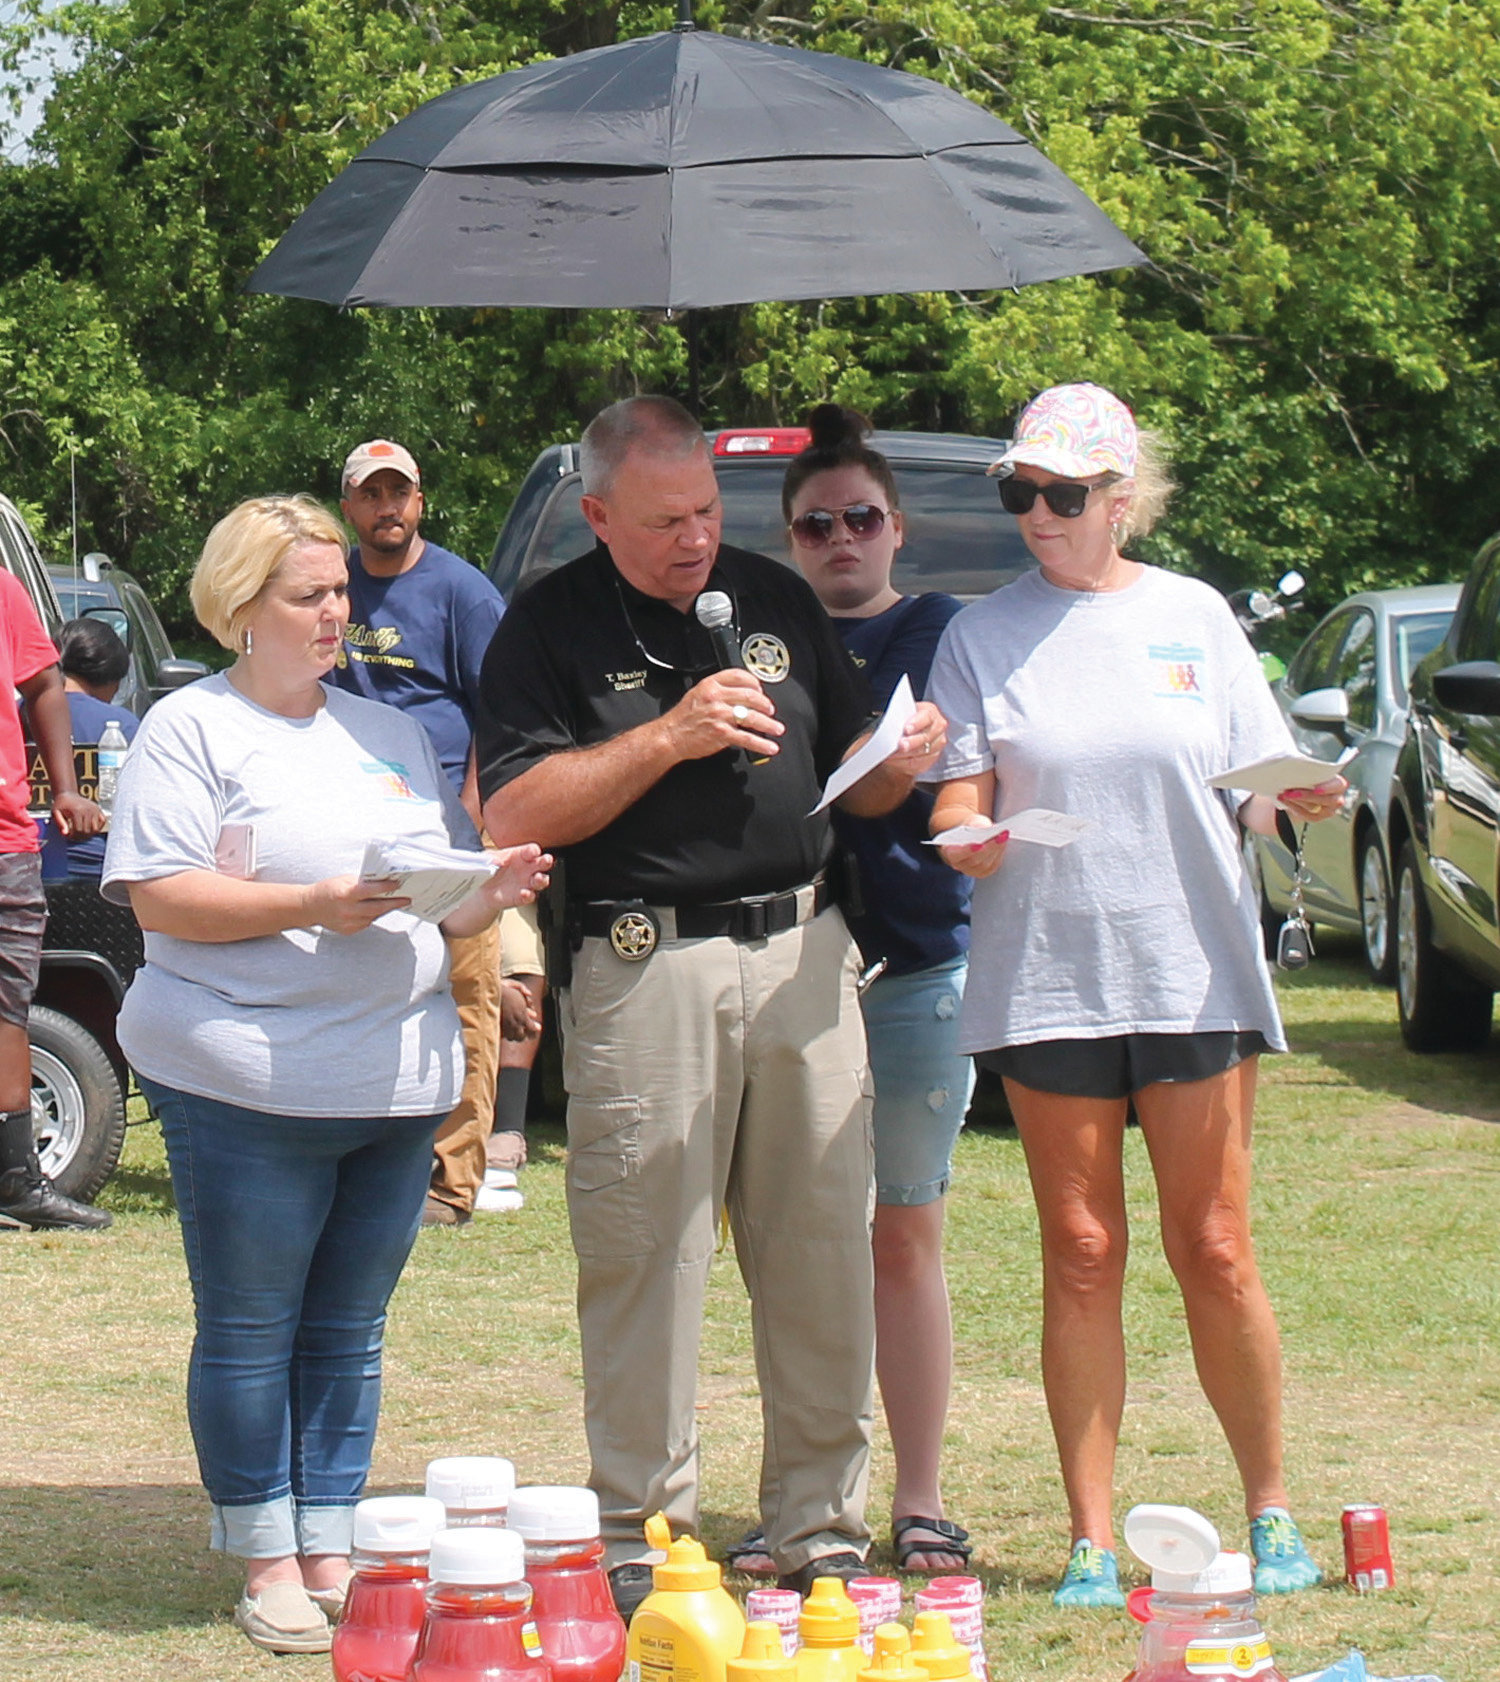 Clarendon County Sheriff Tim Baxley, center, read the names of the individuals listed on the dozens of luminaries that lined the fences at the 2019 Clarendon County Cancer OverComers' Walk.